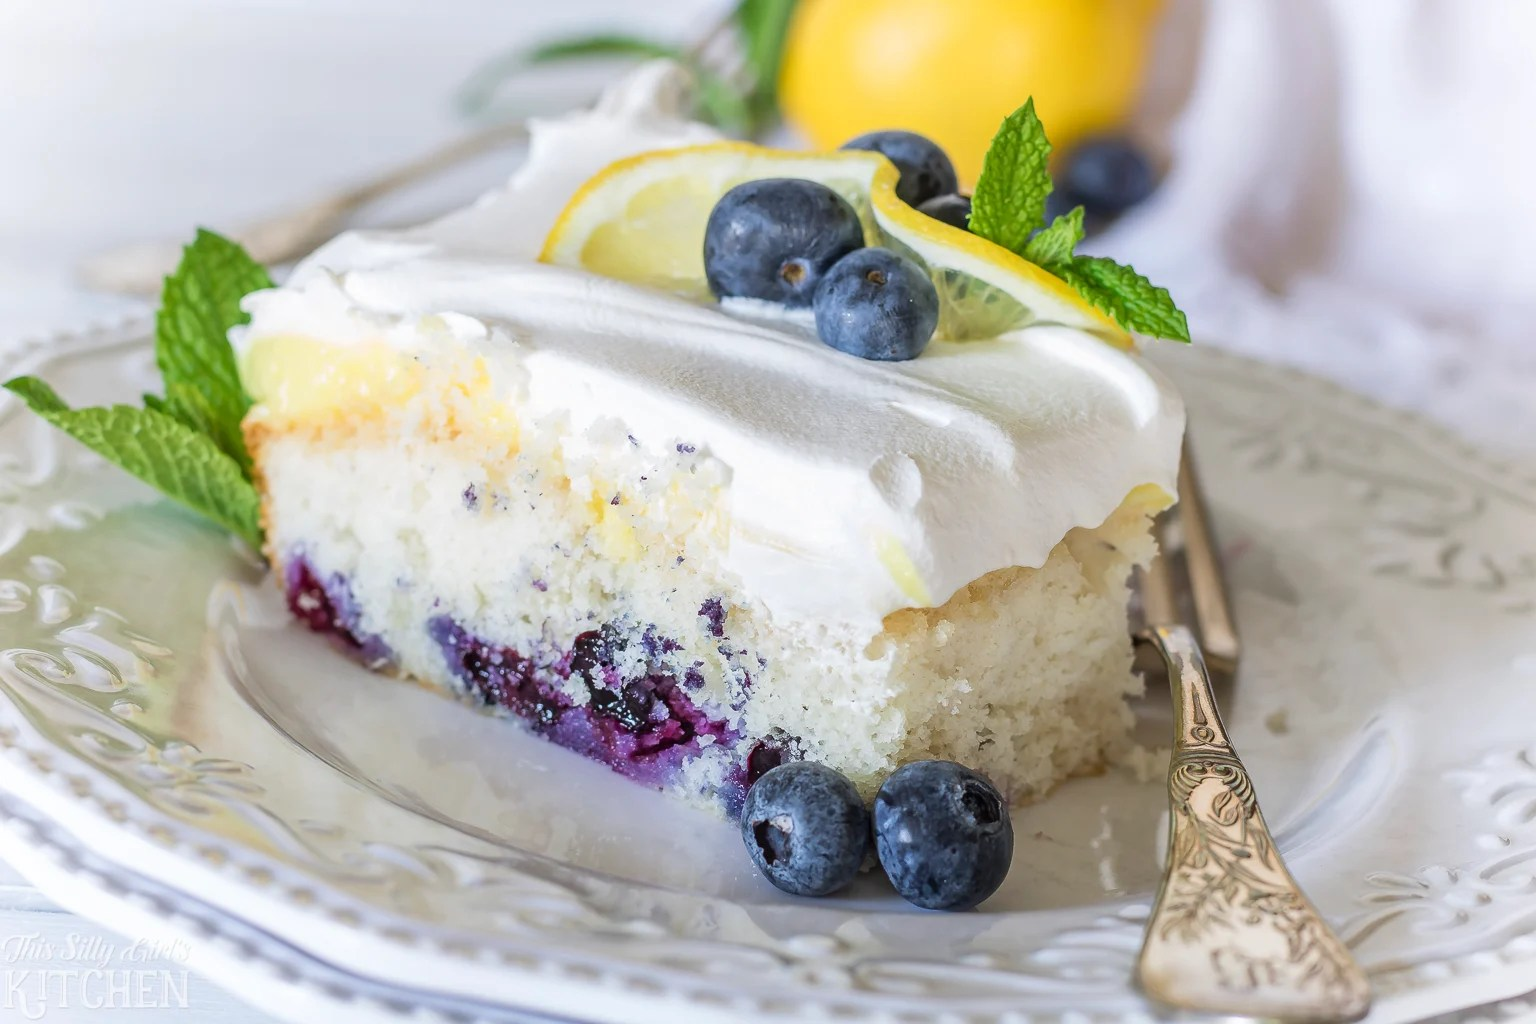 Lemon Blueberry Poke Cake, white cake loaded with fresh blueberries, lemon pudding and whipped topping! Recipe from ThisSillyGirlsKitchen.com